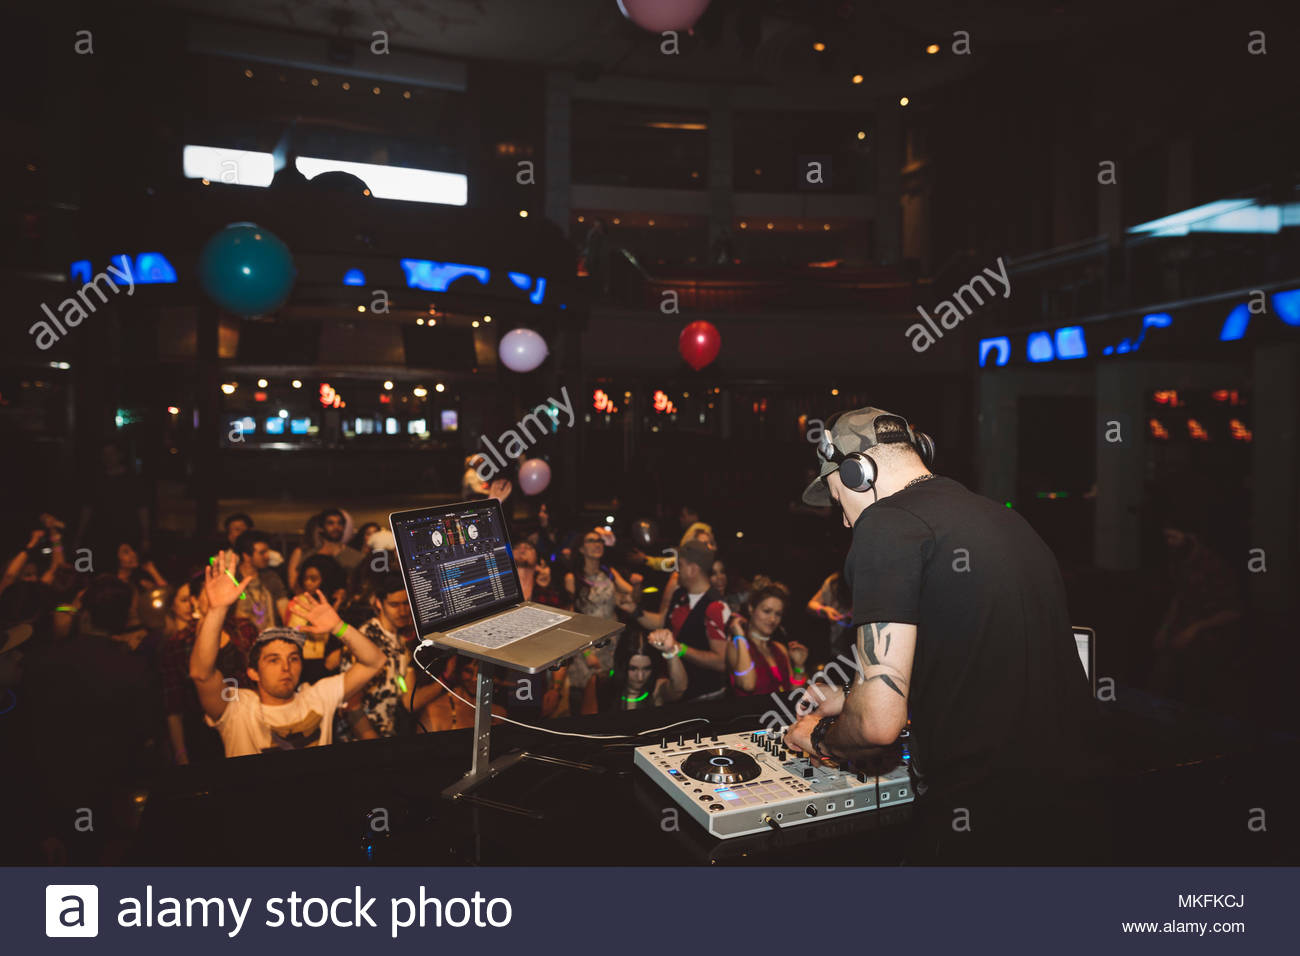 Crowd dancing behind DJ playing music at sound mixer on stage in nightclub - Stock Image